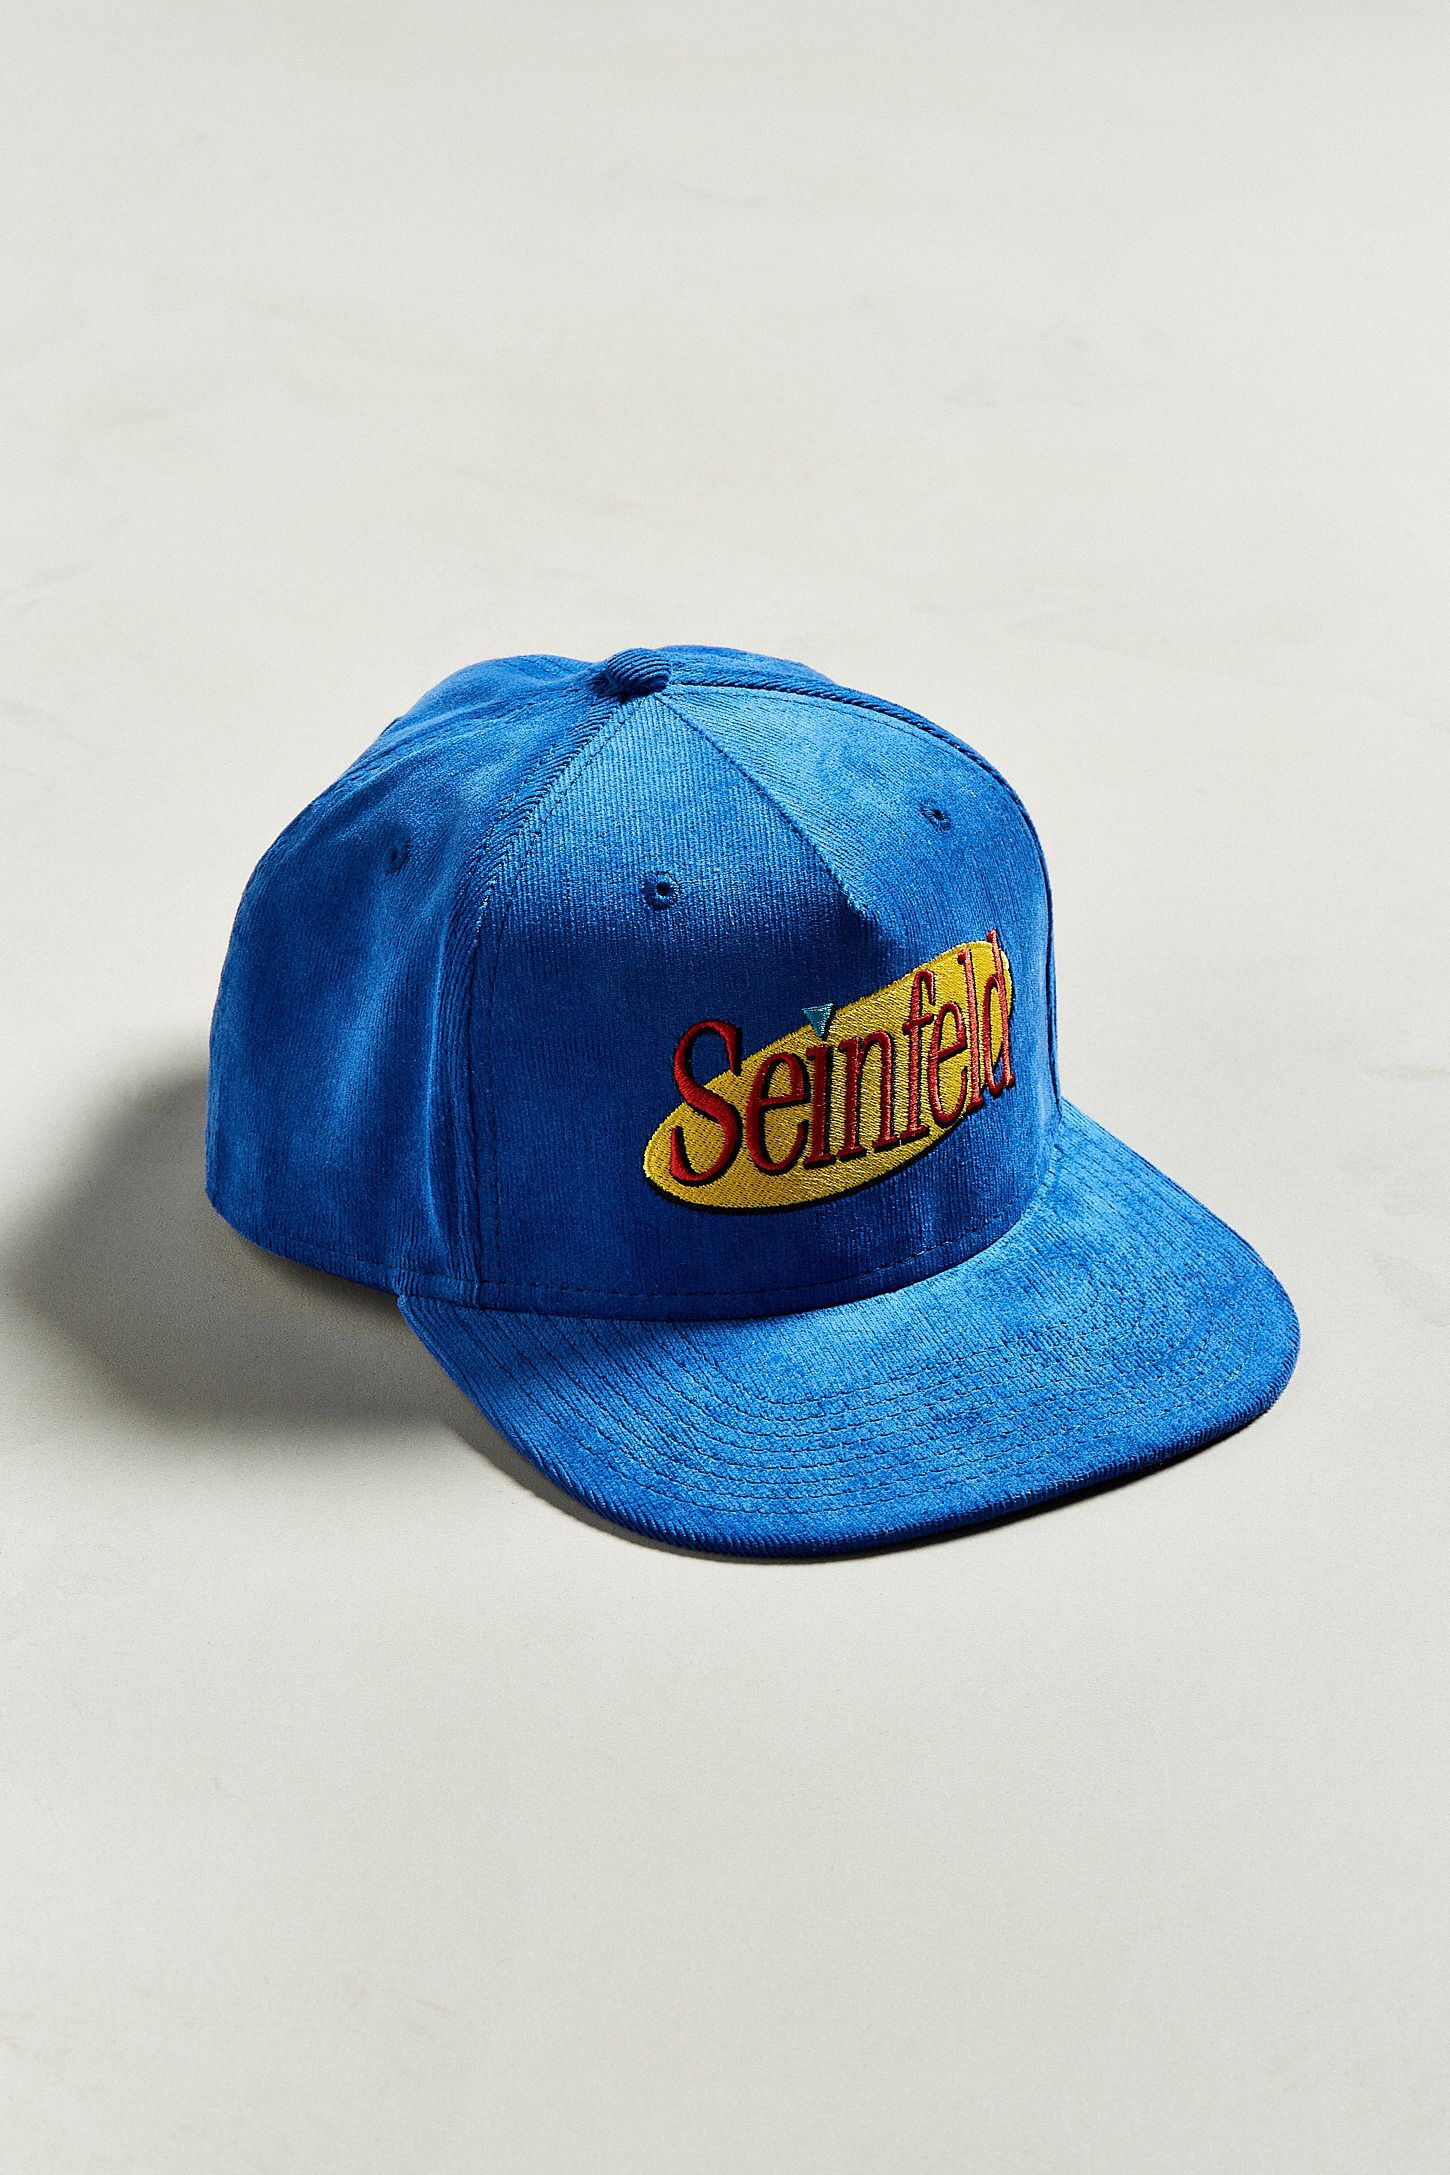 5f958c3ad25 Corduroy cap featuring an embroidered Seinfeld logo at the front